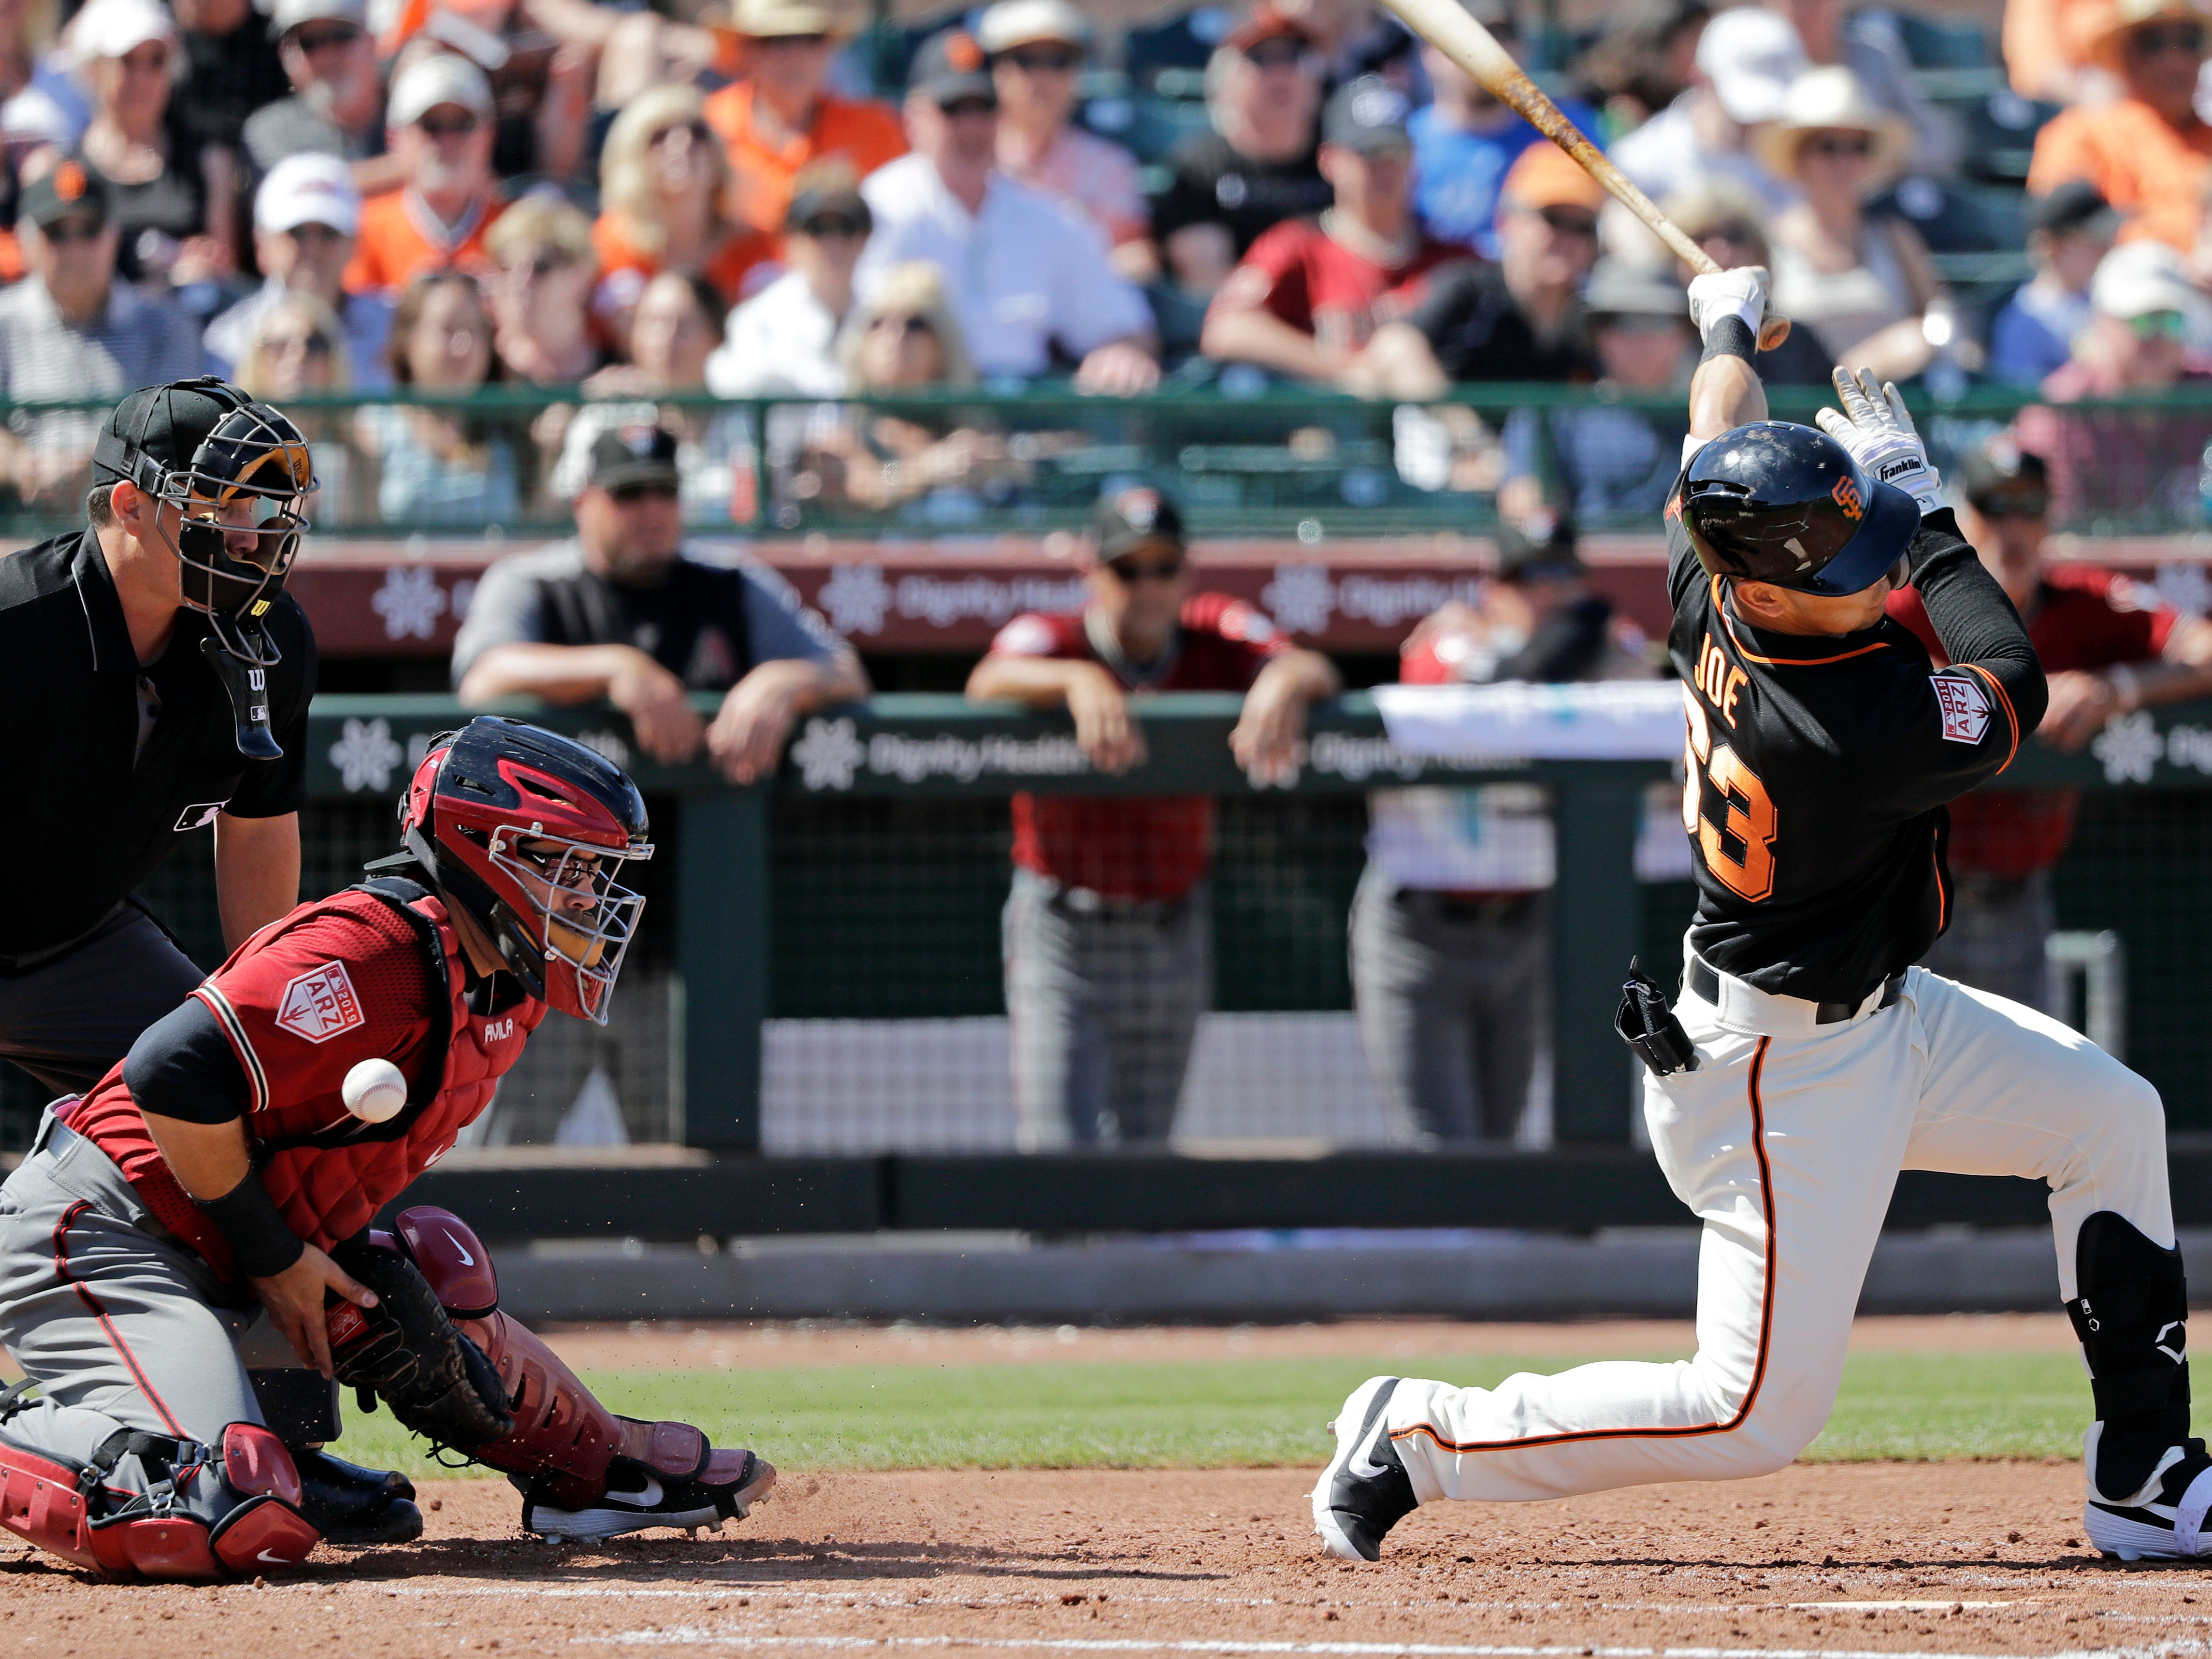 San Francisco Giants' Connor Joe swings and misses for a third strike as the ball gets away from Arizona Diamondbacks catcher Alex Avila with umpire Sean Ryan looking on in the third inning of a spring training baseball game Saturday, March 23, 2019, in Scottsdale, Ariz.